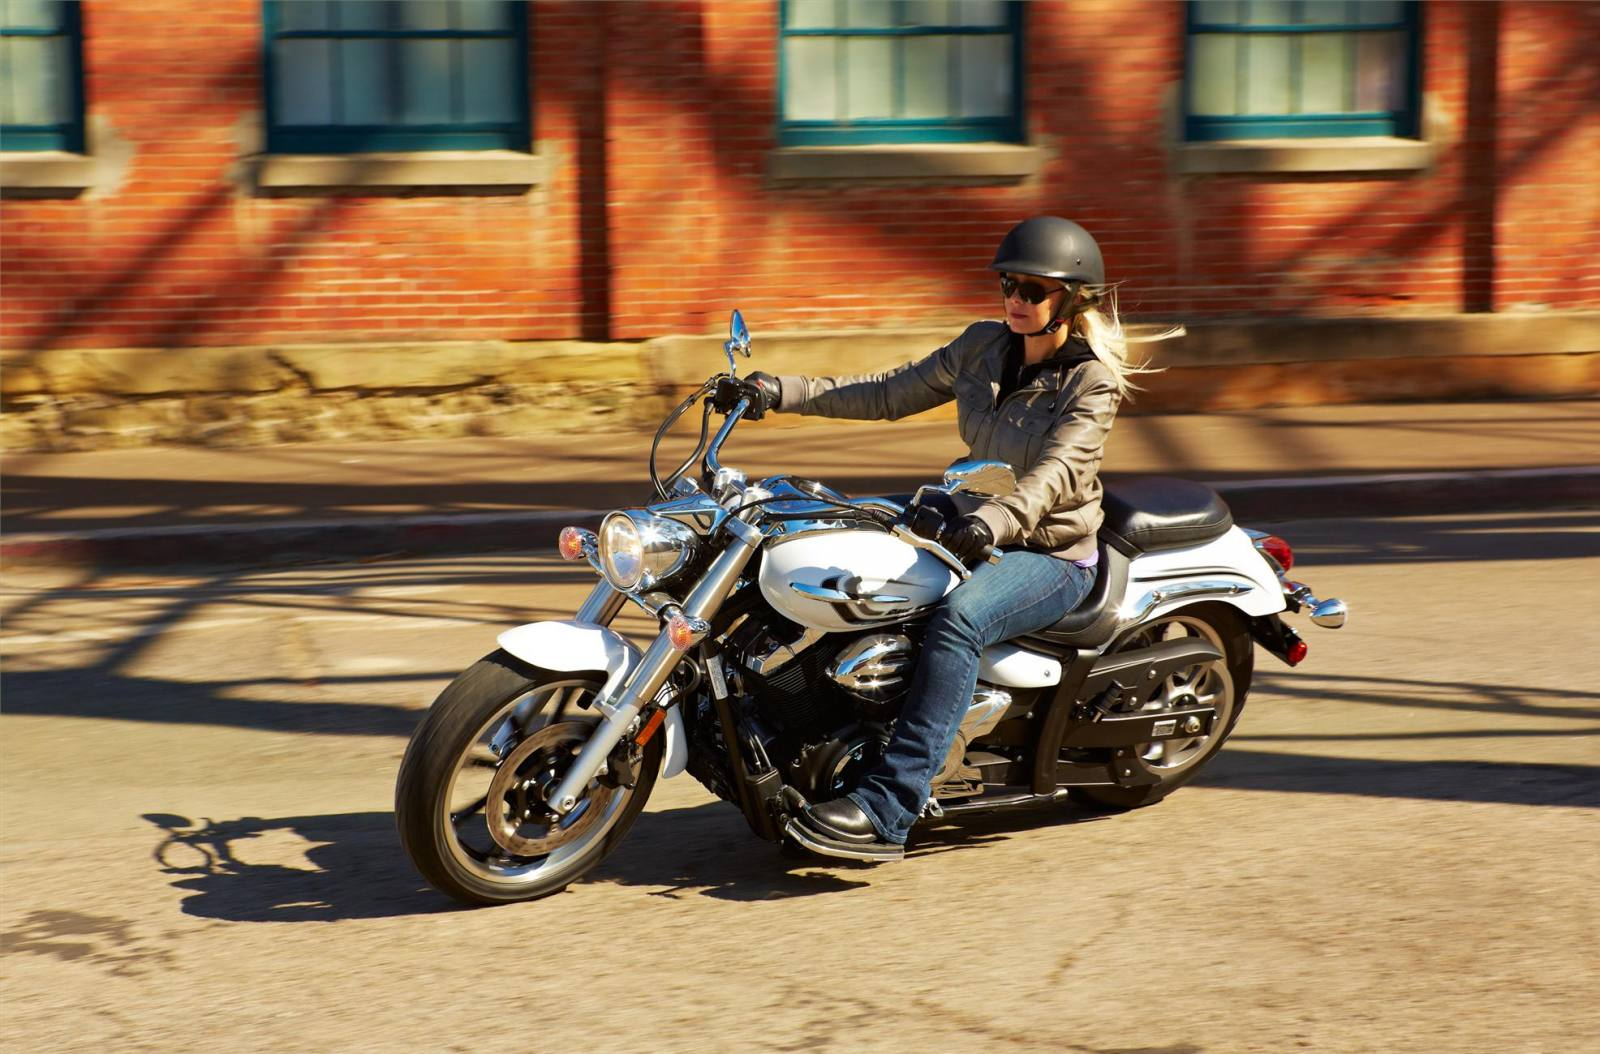 2013 Yamaha V Star 950 for sale in Saint Ann, MO. Donelson Cycles, Inc.